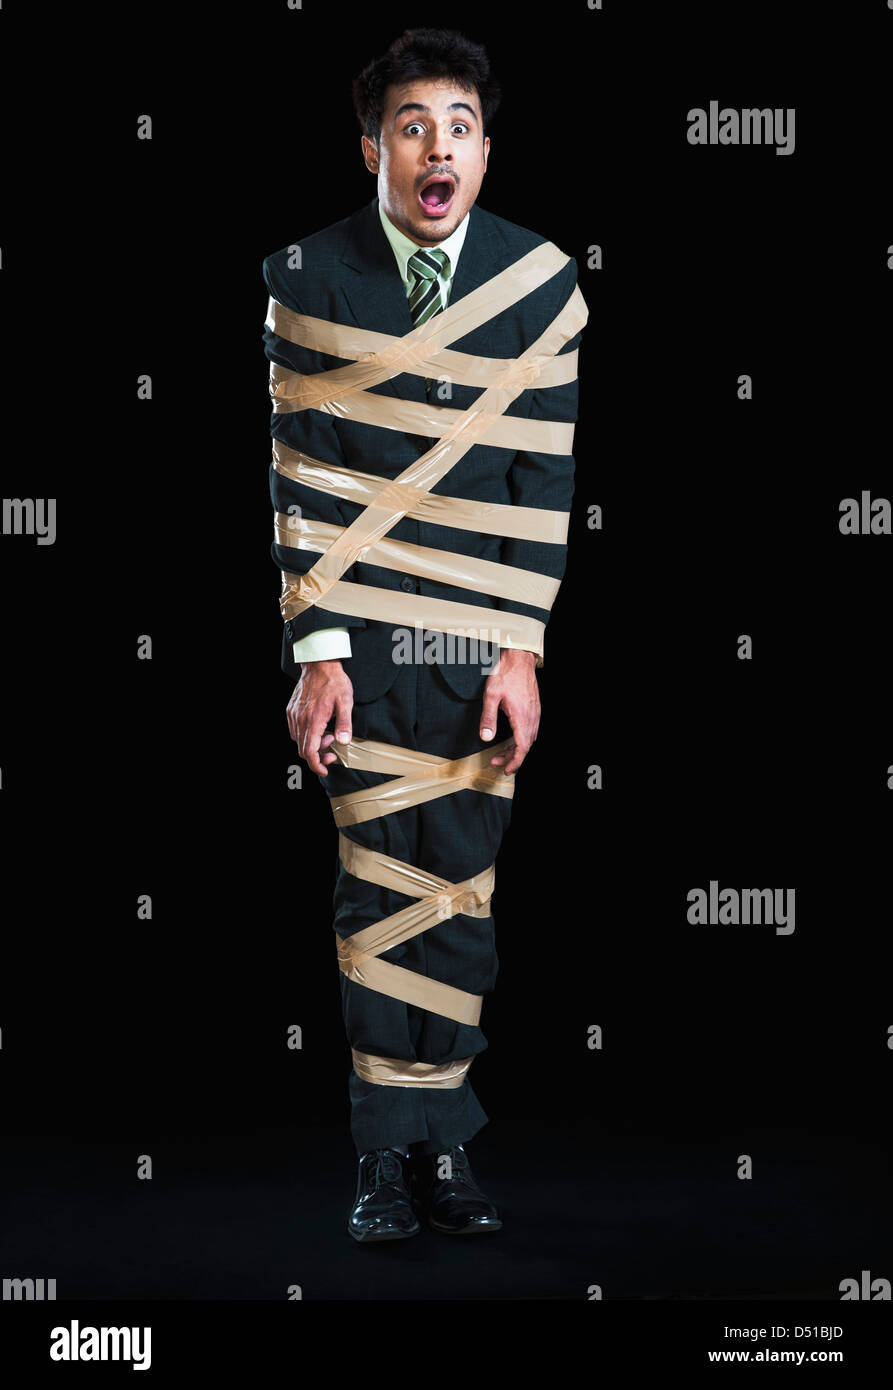 Businessman tied up with adhesive tape looking shocked Stock Photo